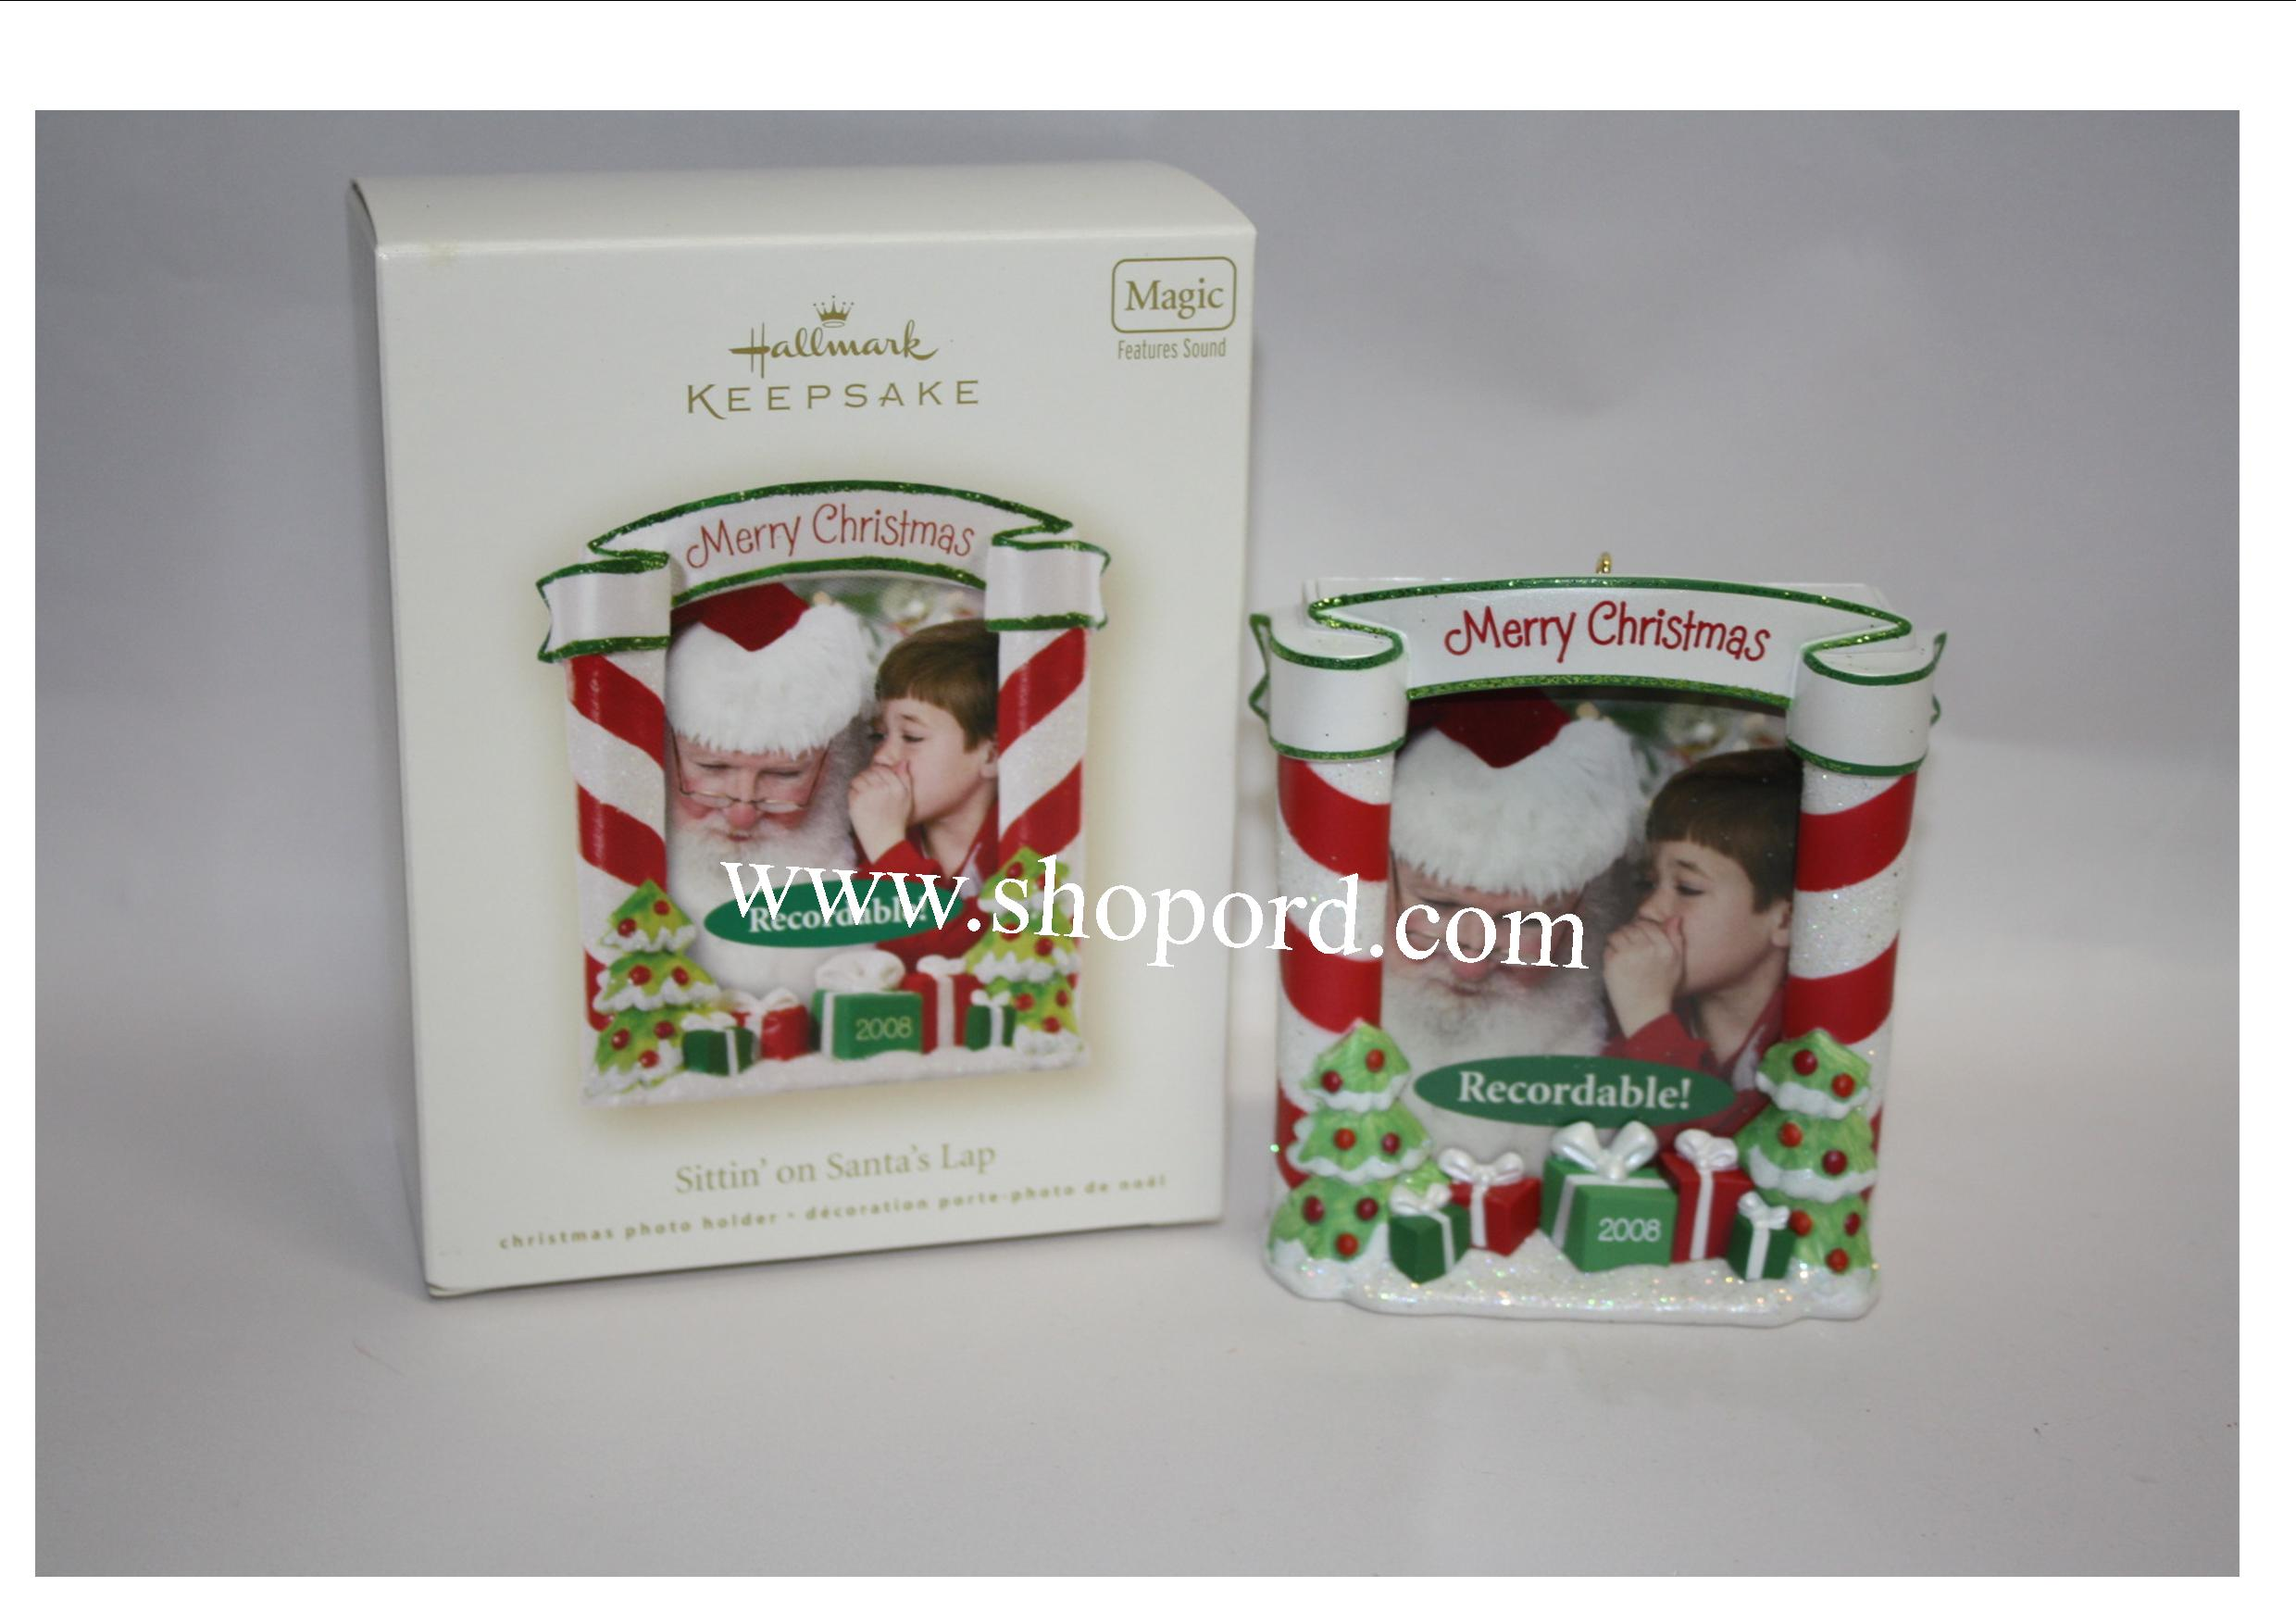 Hallmark 2008 Sittin on Santas Lap Photo Holder Ornament QXG7271 Damaged Box